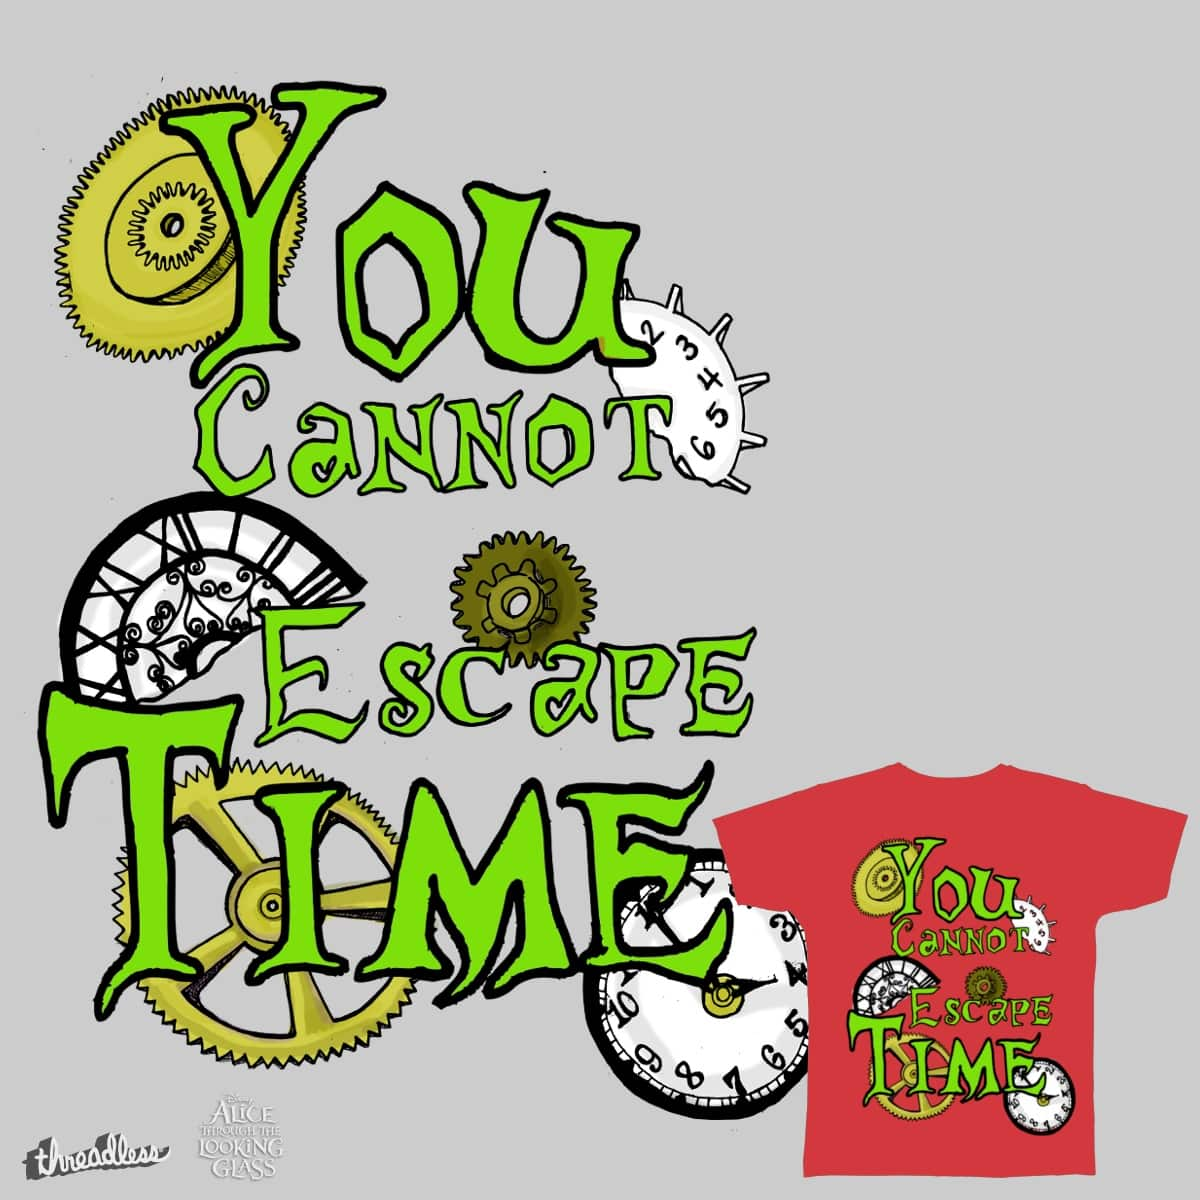 You Cannot Escape Time, Alice... by inkeater on Threadless